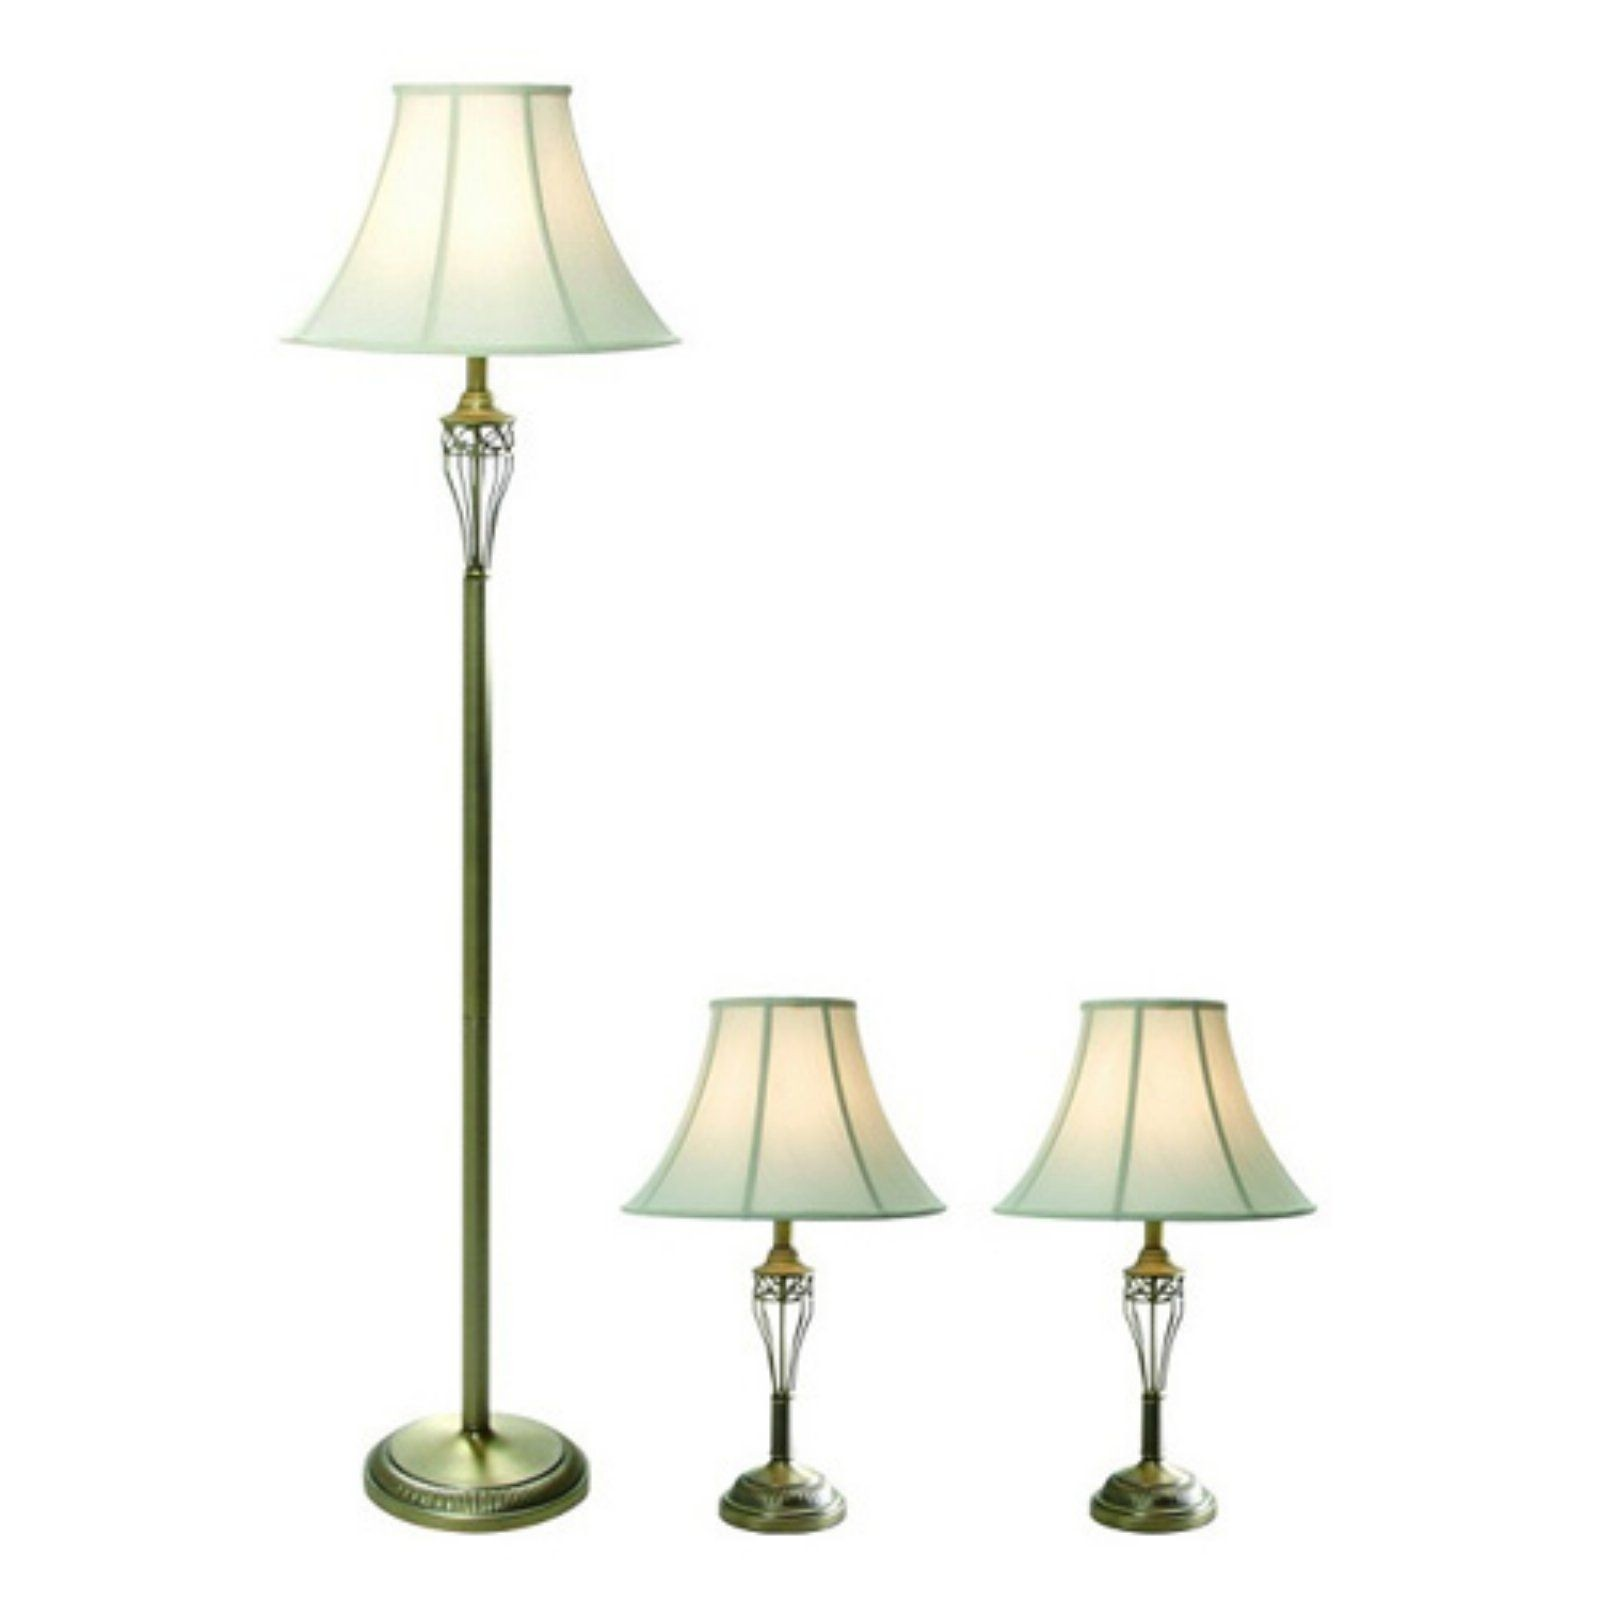 Elegant Designs LC1001 ABS Three Pack Lamp Set (2 Table Lamps, 1 Floor